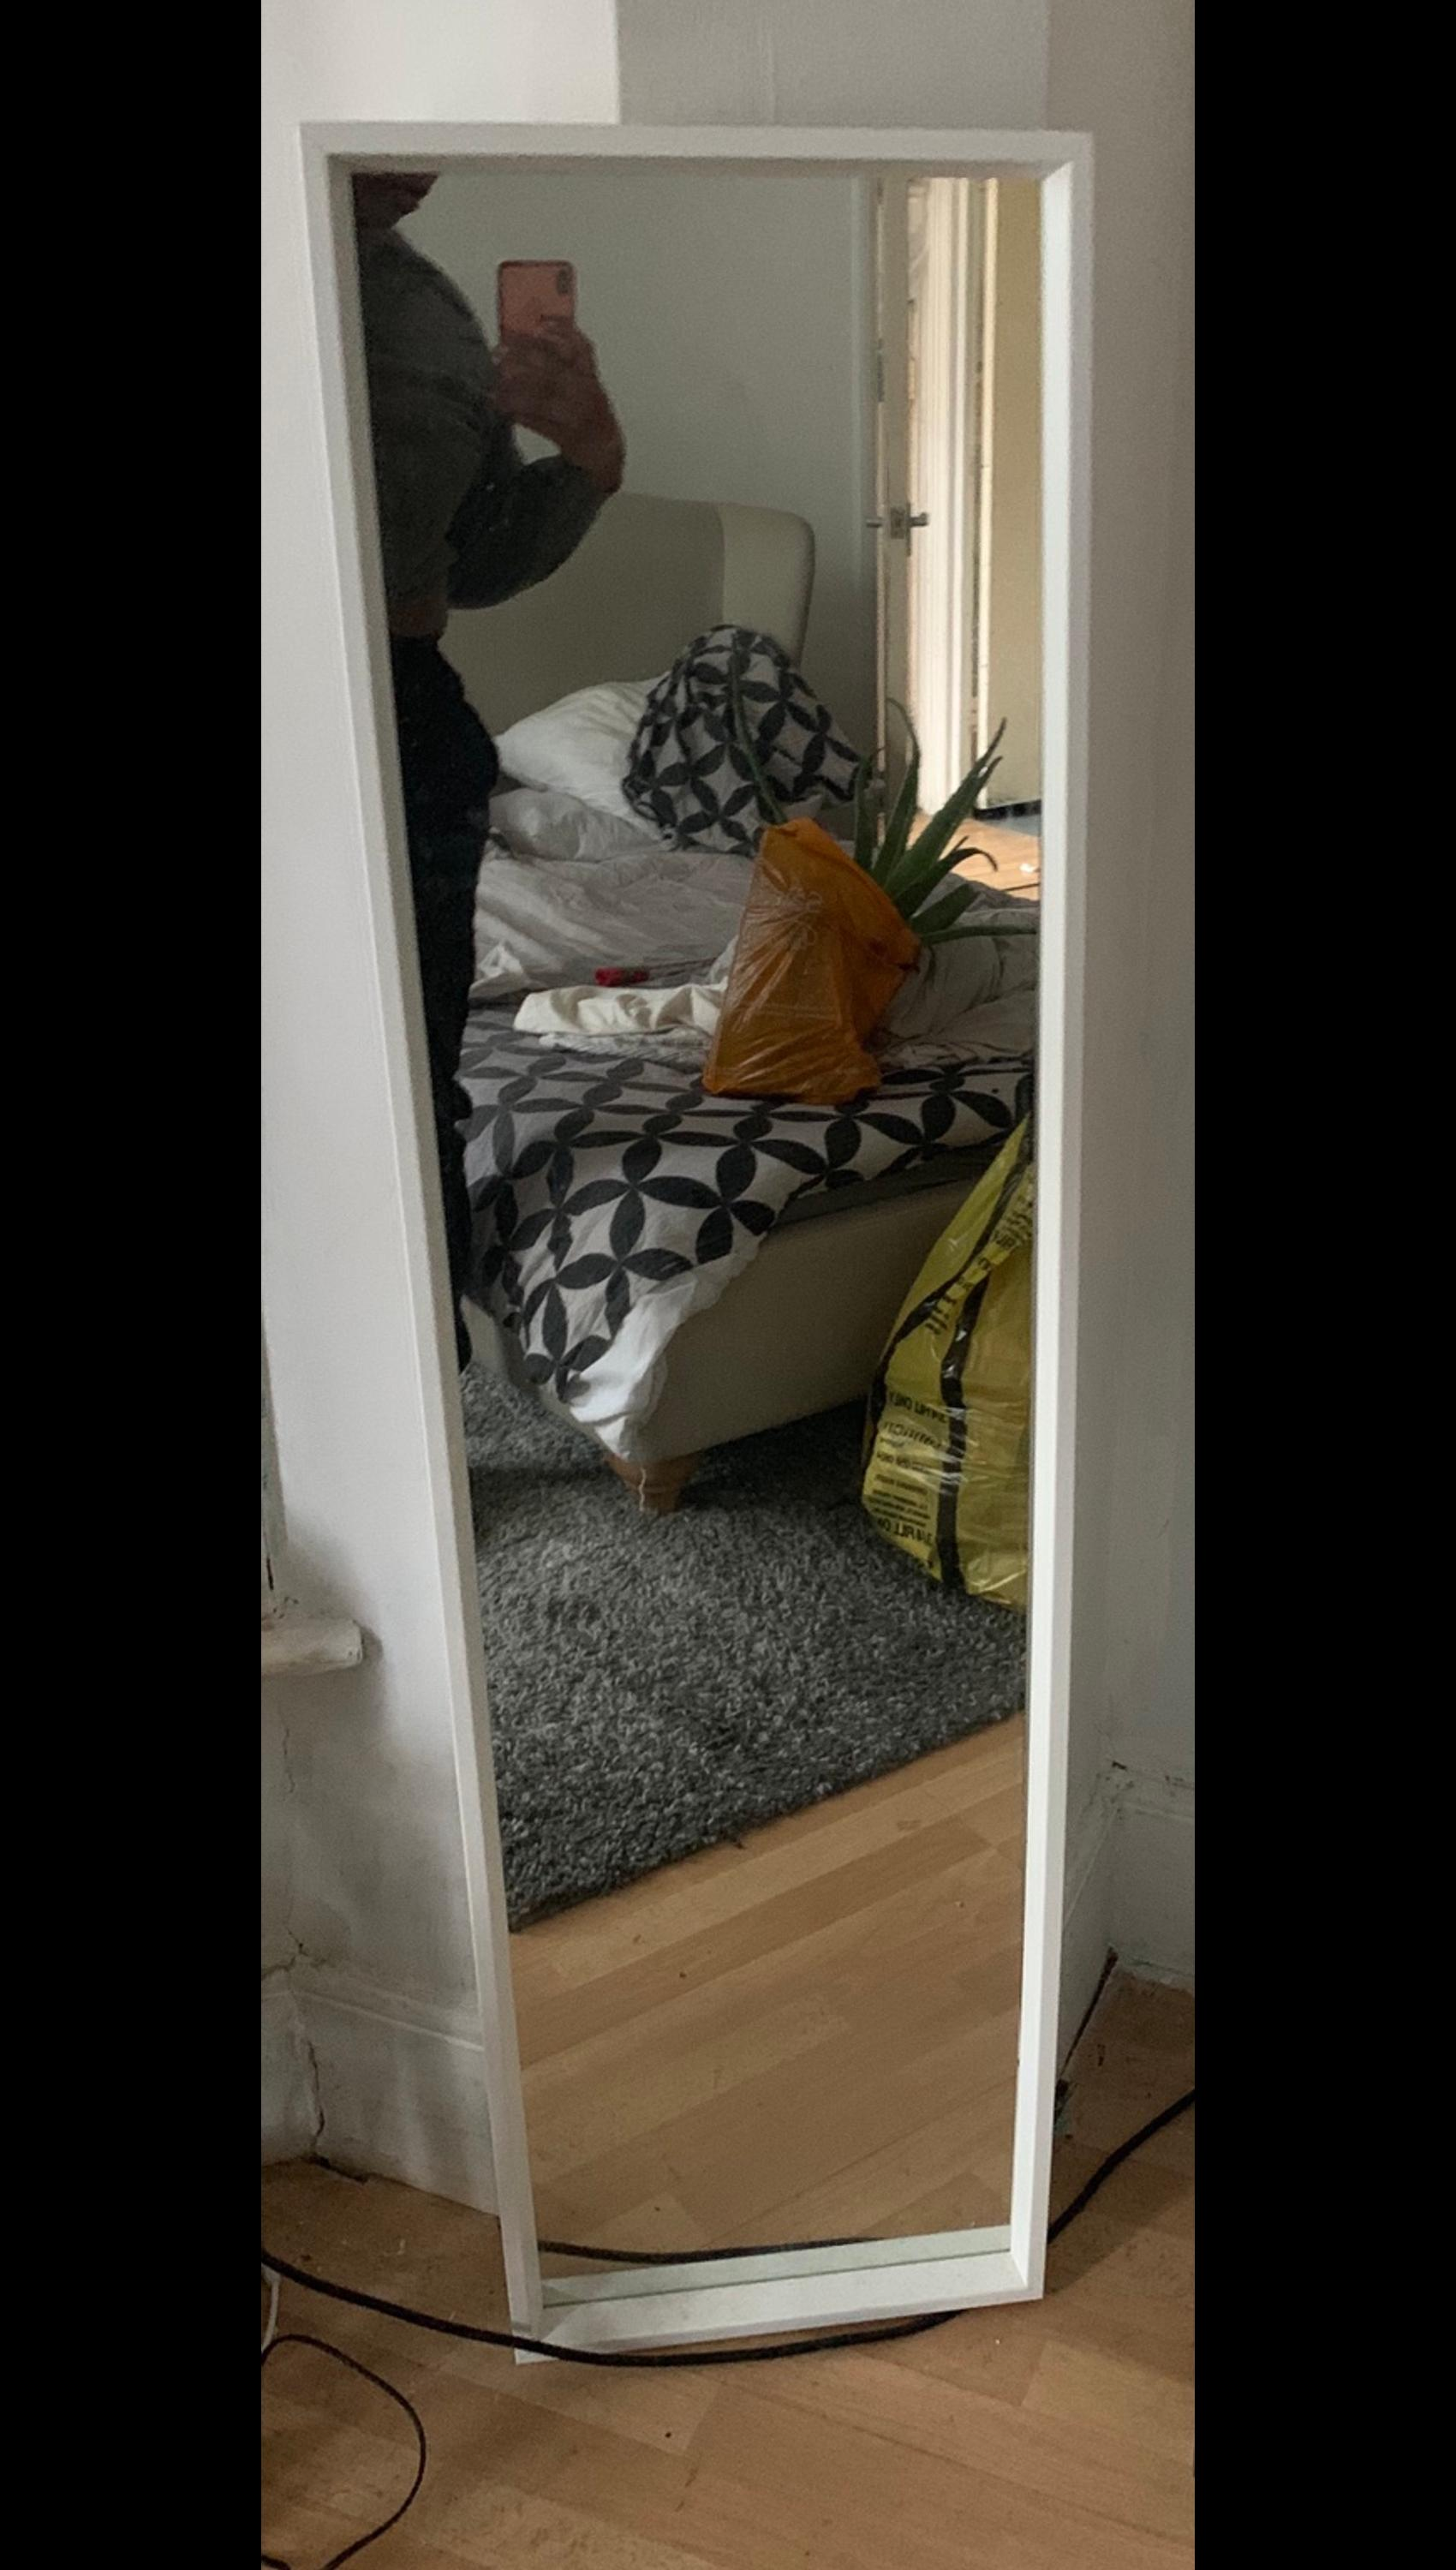 Ikea Nissedal Mirror In Rg2 Reading For 15 00 For Sale Shpock